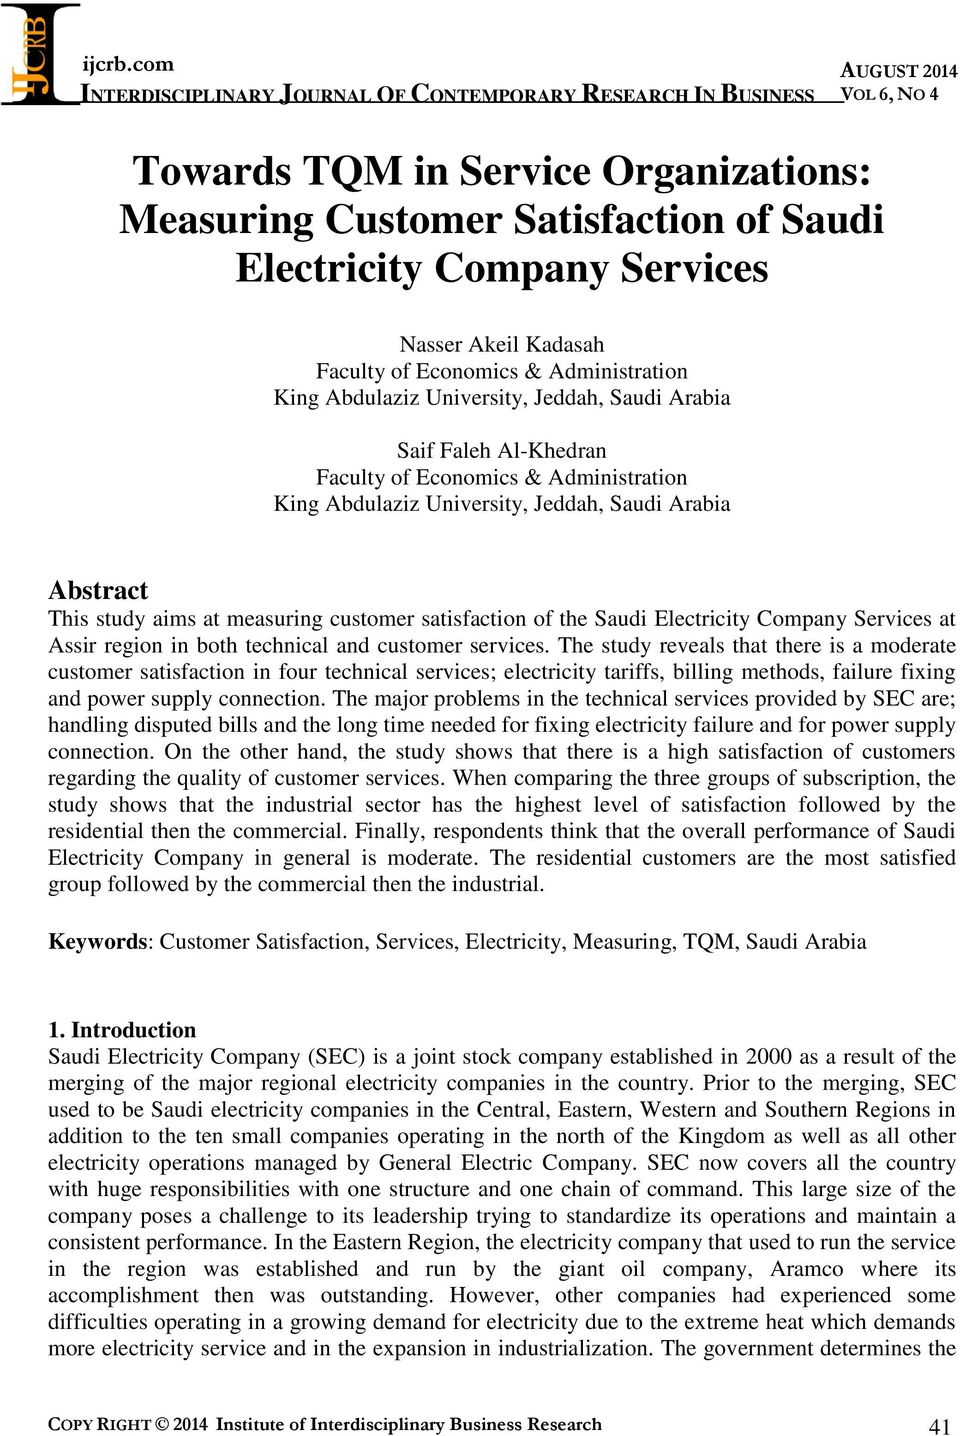 Saudi Electricity Company Services at Assir region in both technical and customer services.